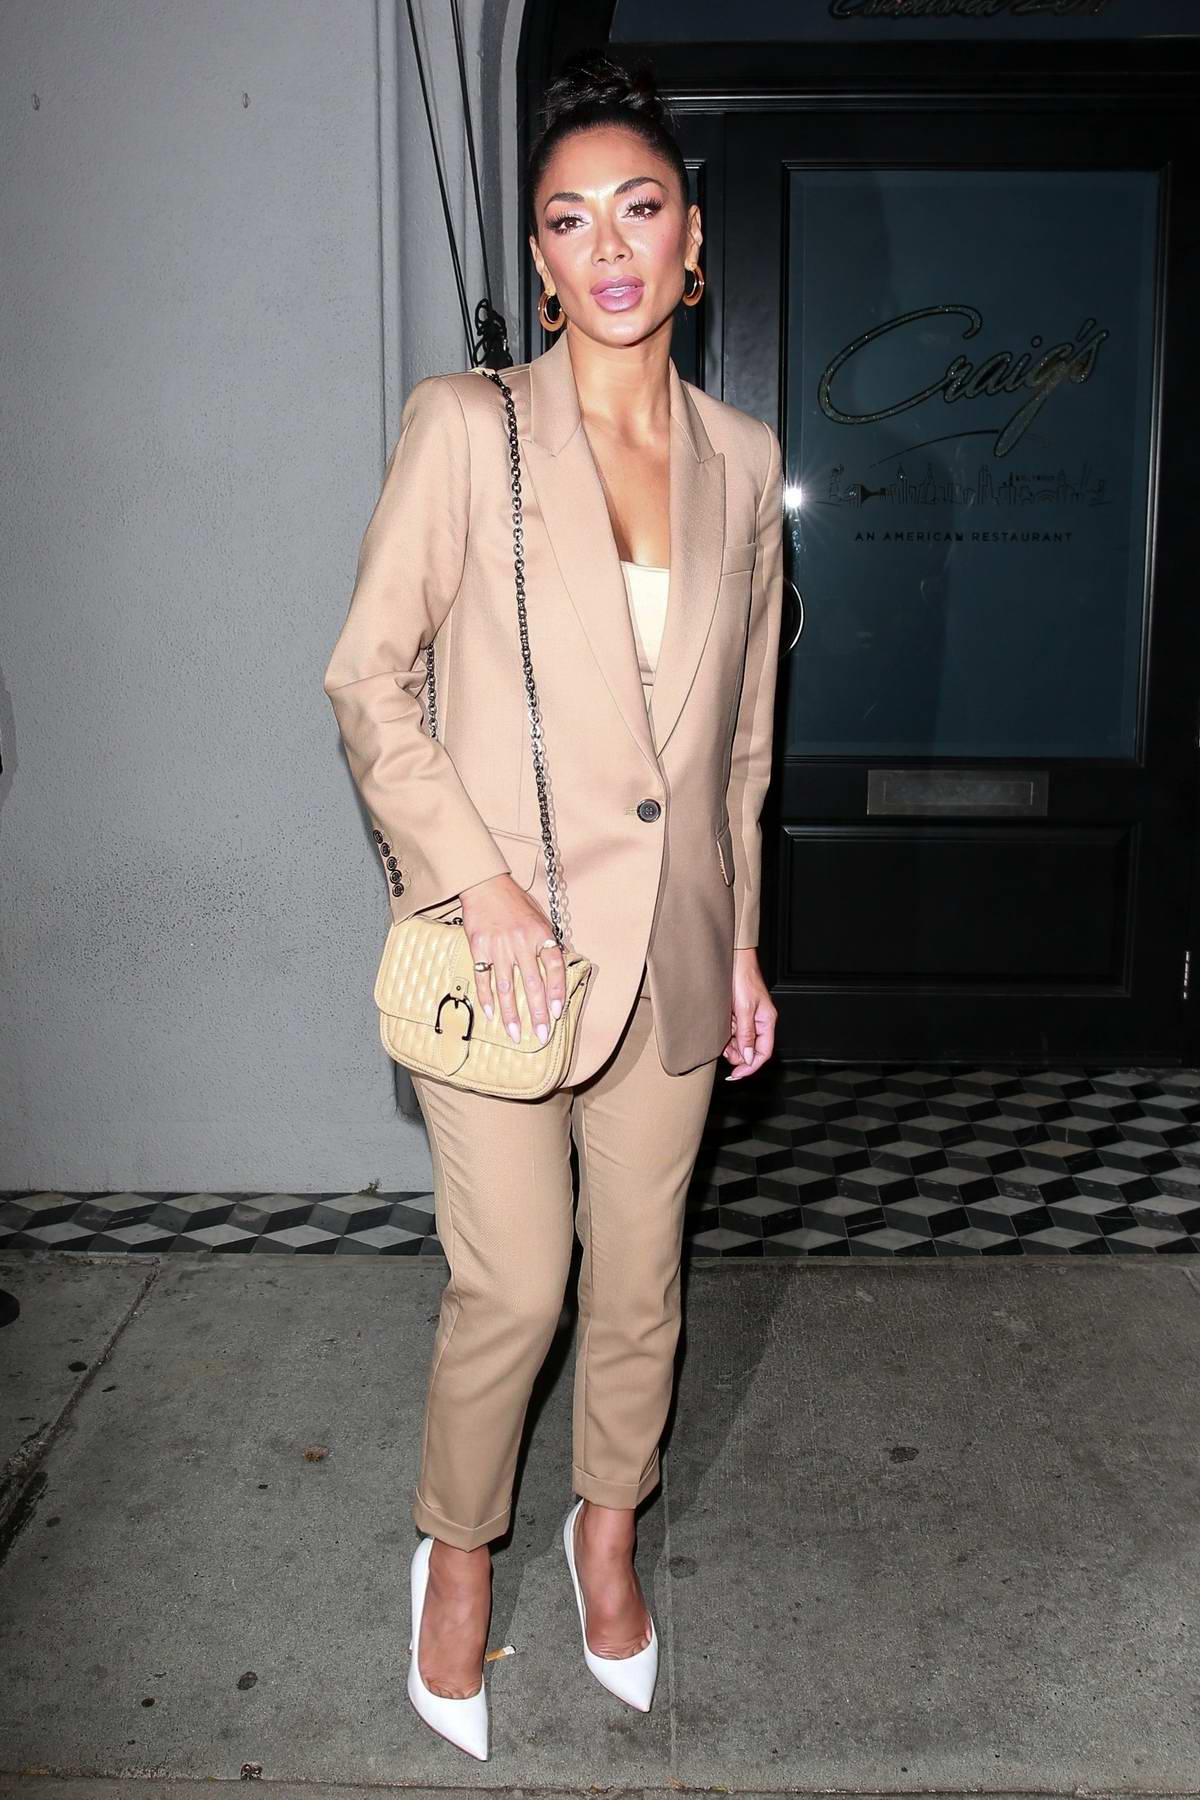 Nicole Scherzinger seen wearing a beige suit as she leaves Craig's in West Hollywood, California